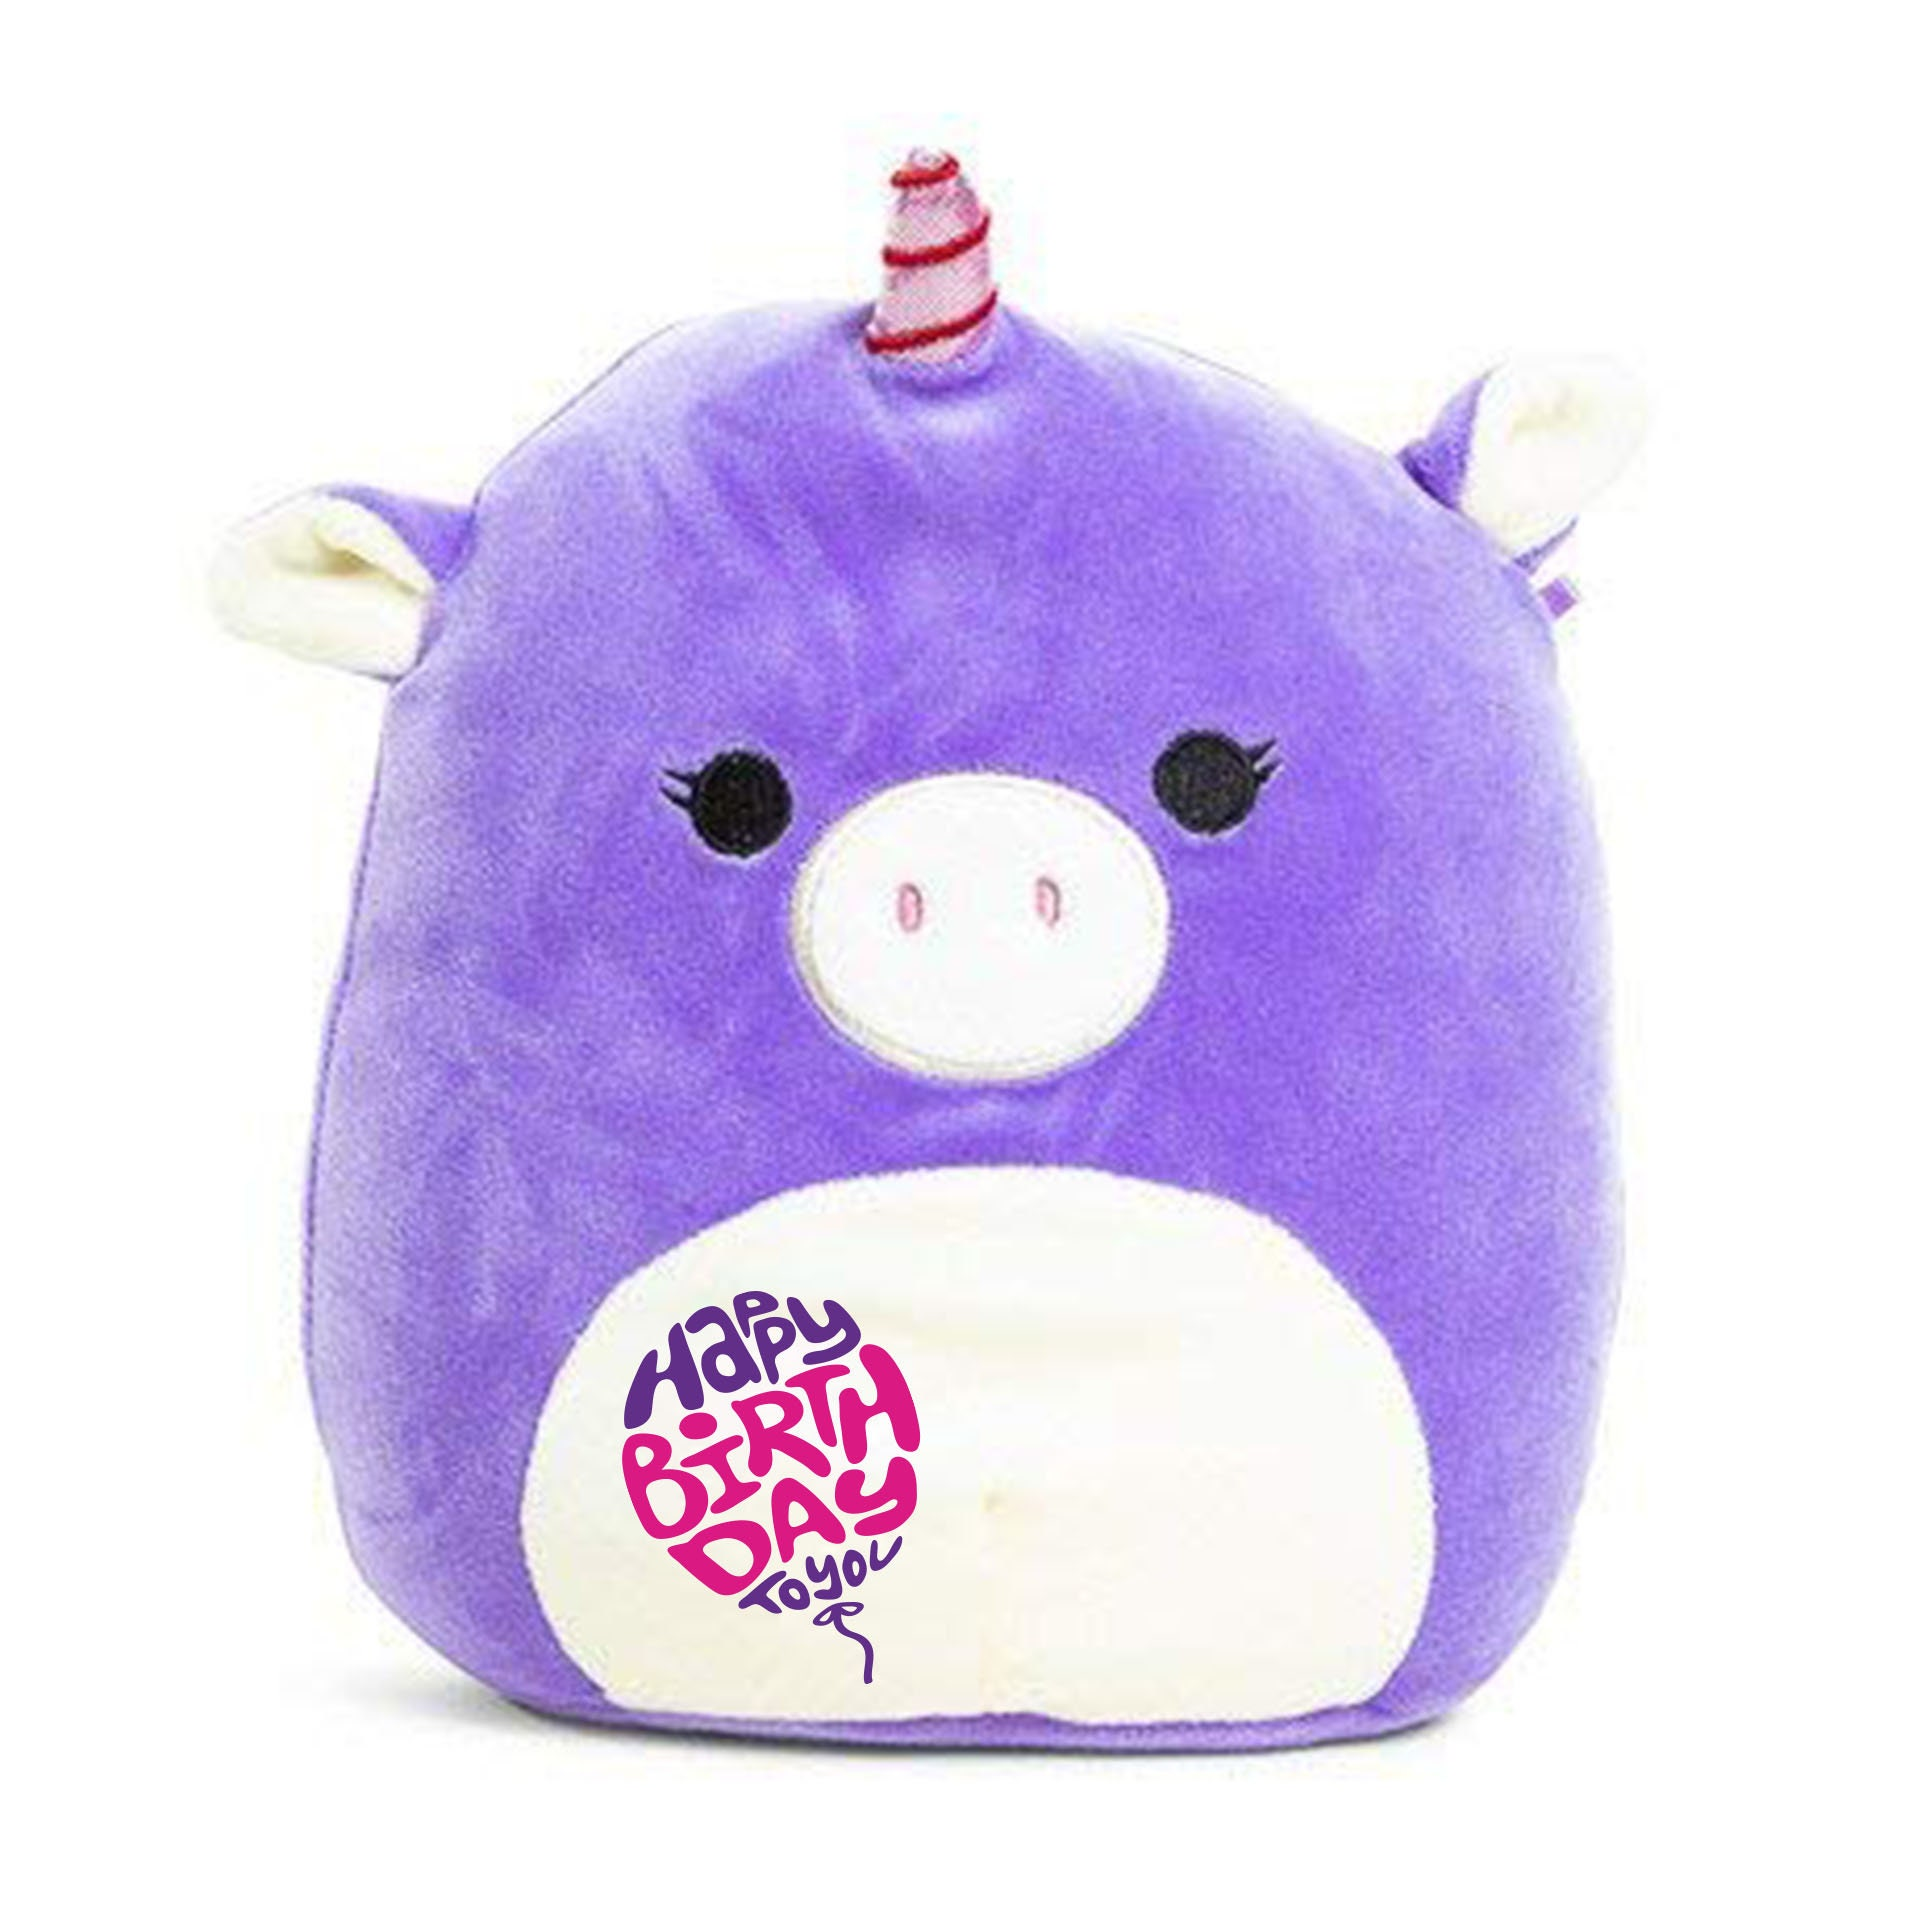 Kellytoy Squishmallow 16 Connor The Cow Super Soft Plush Toy Pillow Pet Animal Pillow Pal Buddy Pal Buddy